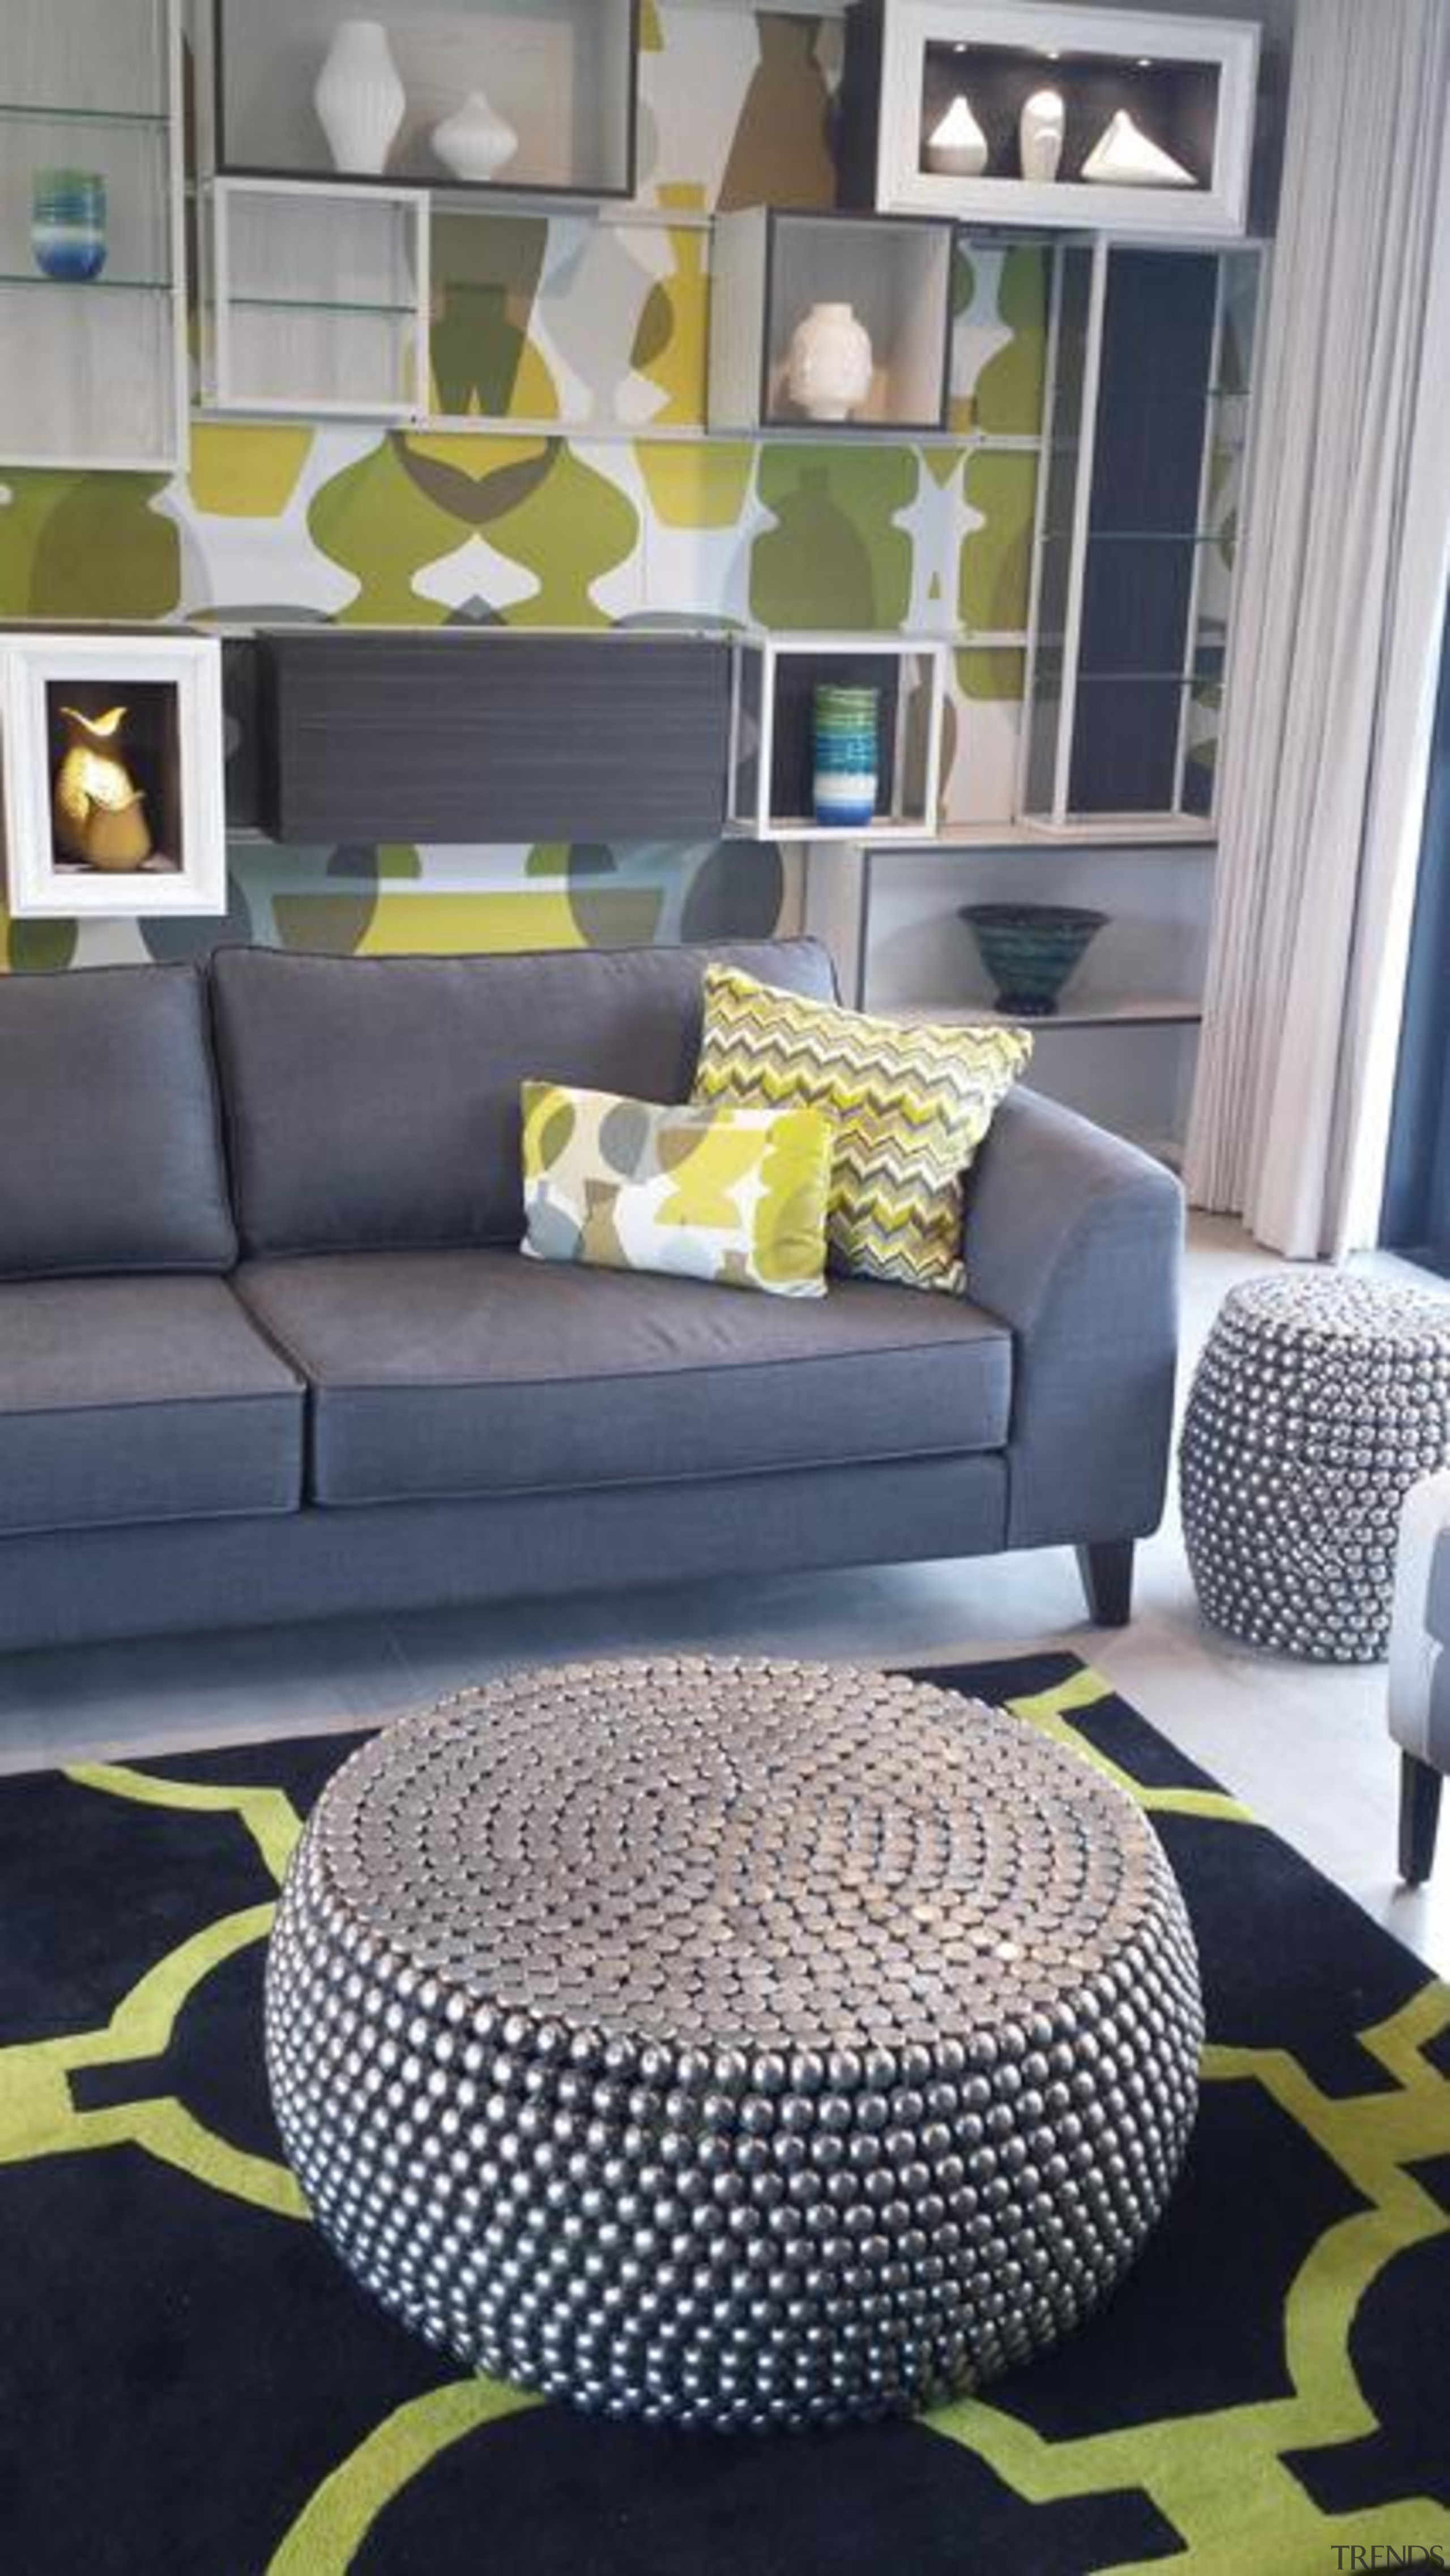 family room after 2.jpg - family_room_after_2.jpg - chair chair, couch, floor, flooring, furniture, home, interior design, living room, room, table, wall, yellow, gray